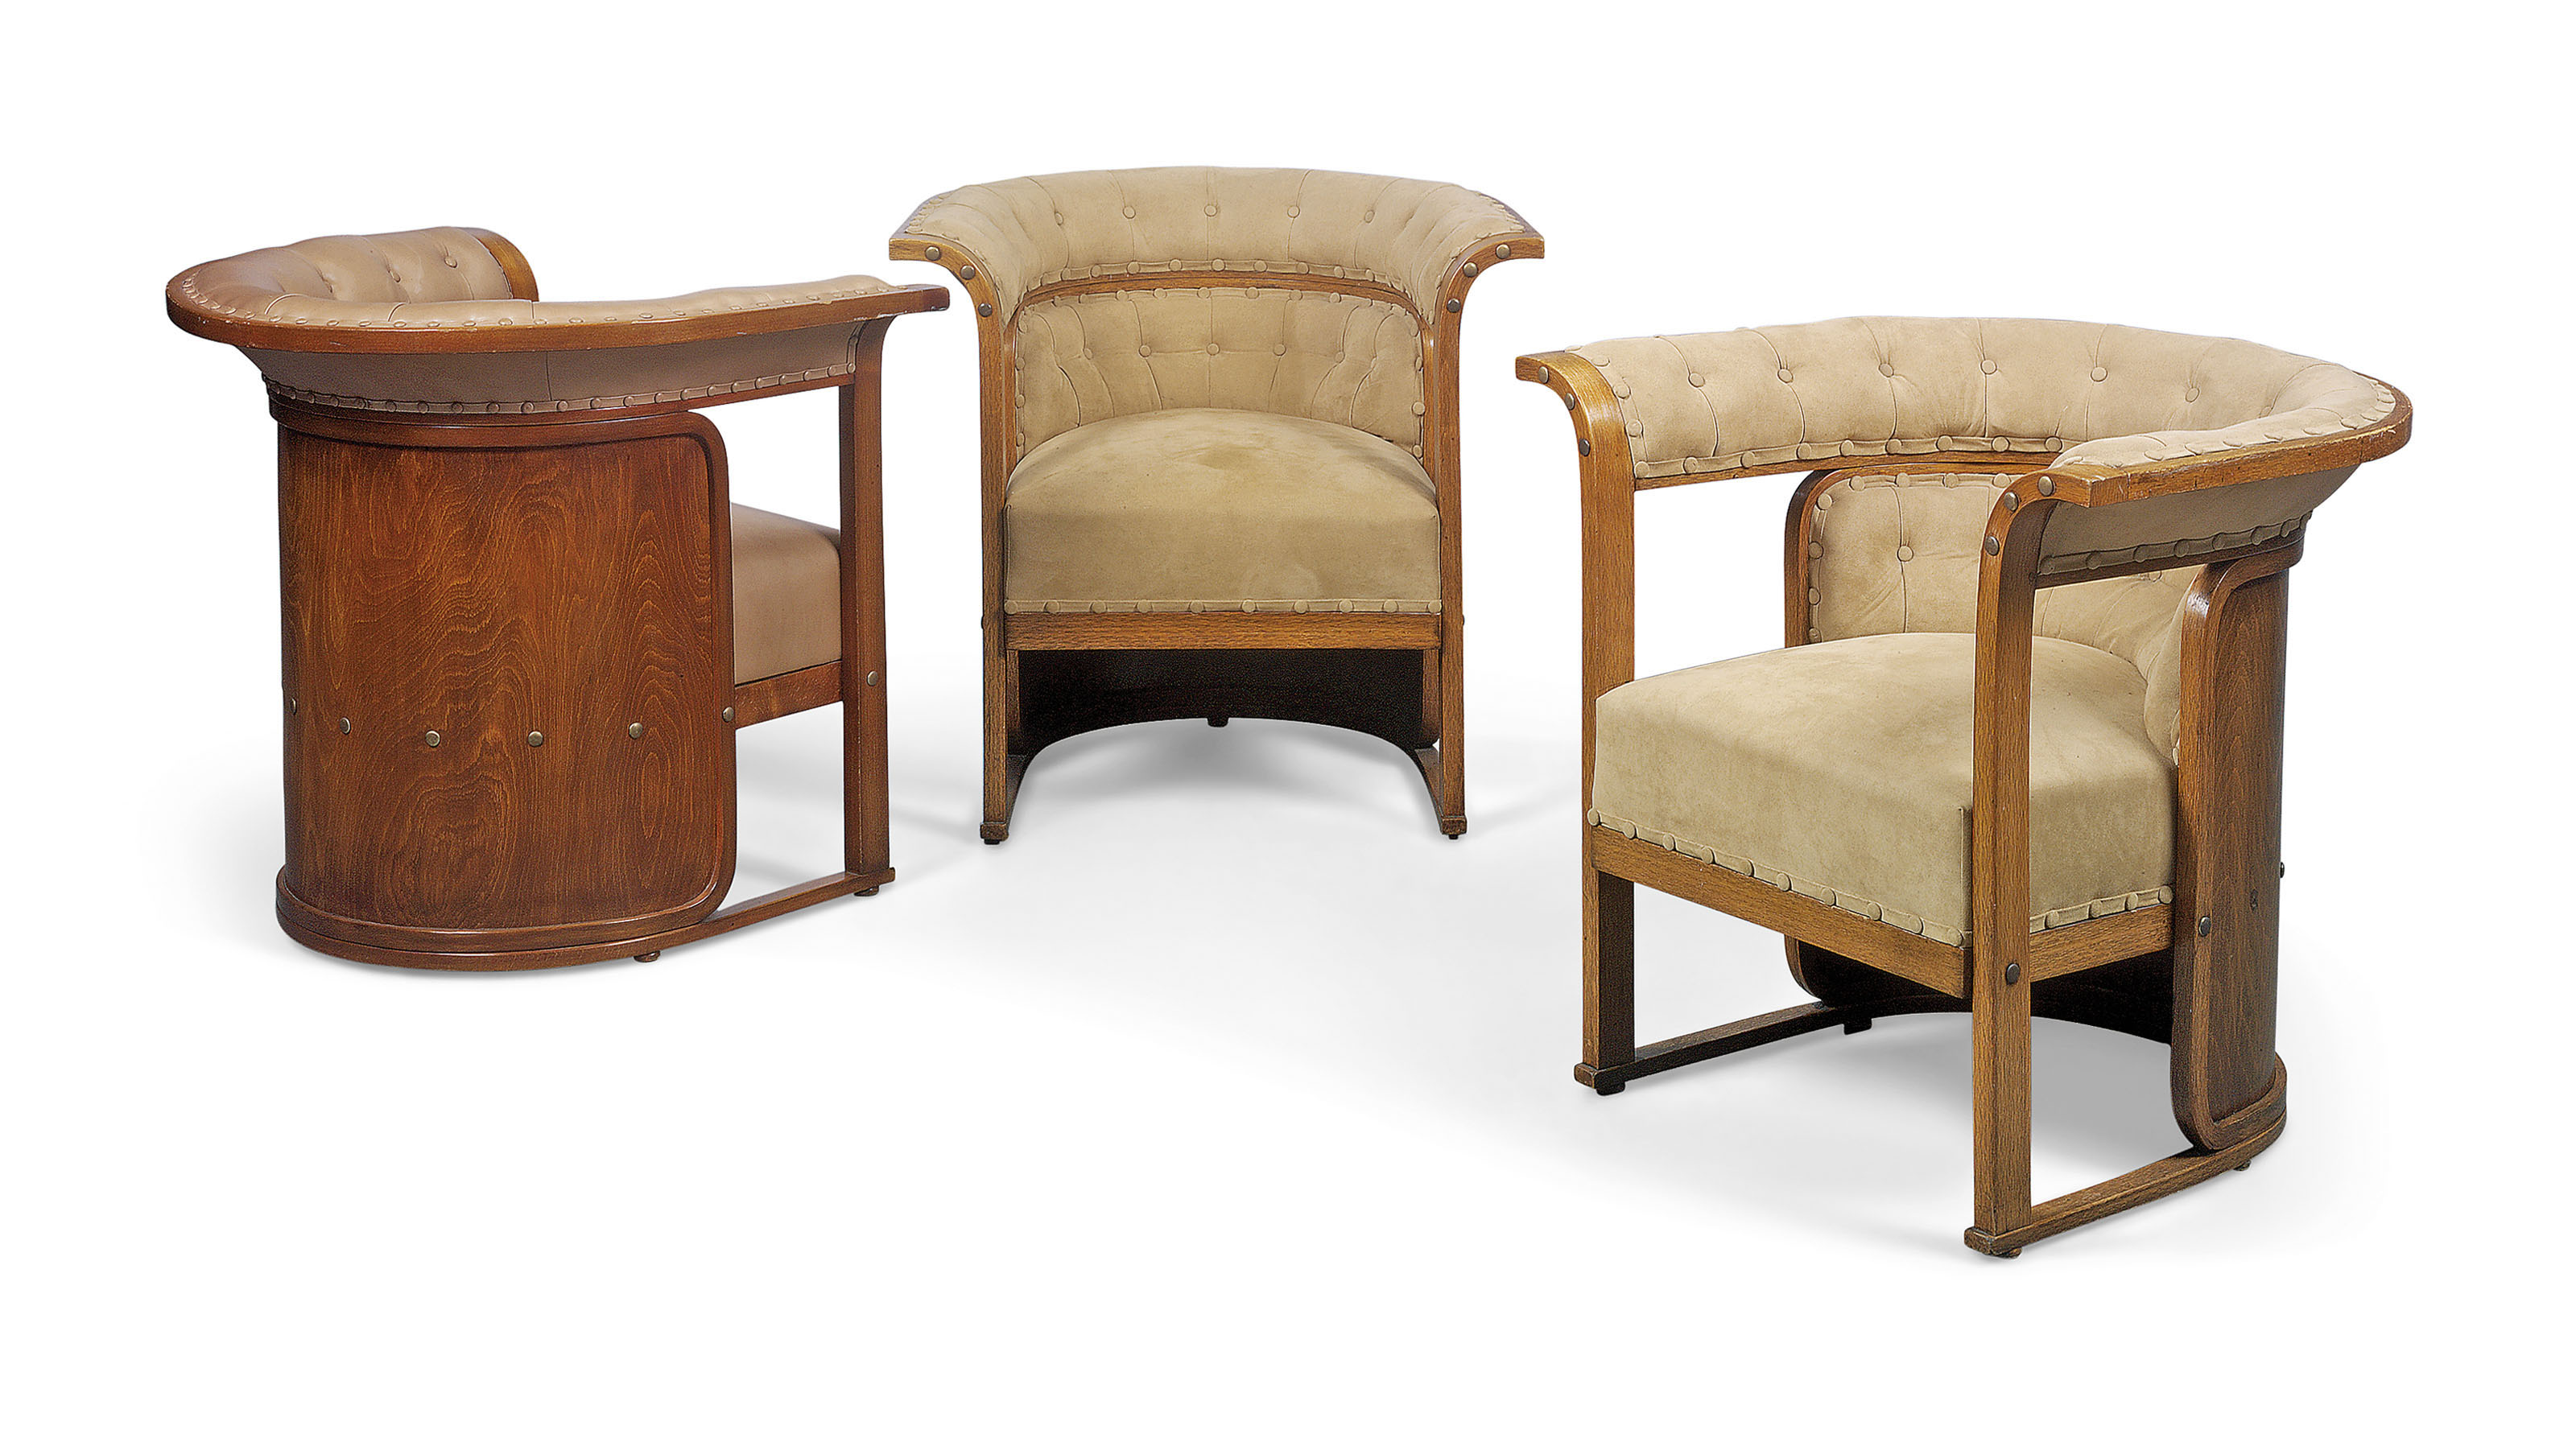 A MATCHED SET OF THREE 'BUENOS AIRES' BEECHWOOD AND OAK ARMCHAIRS